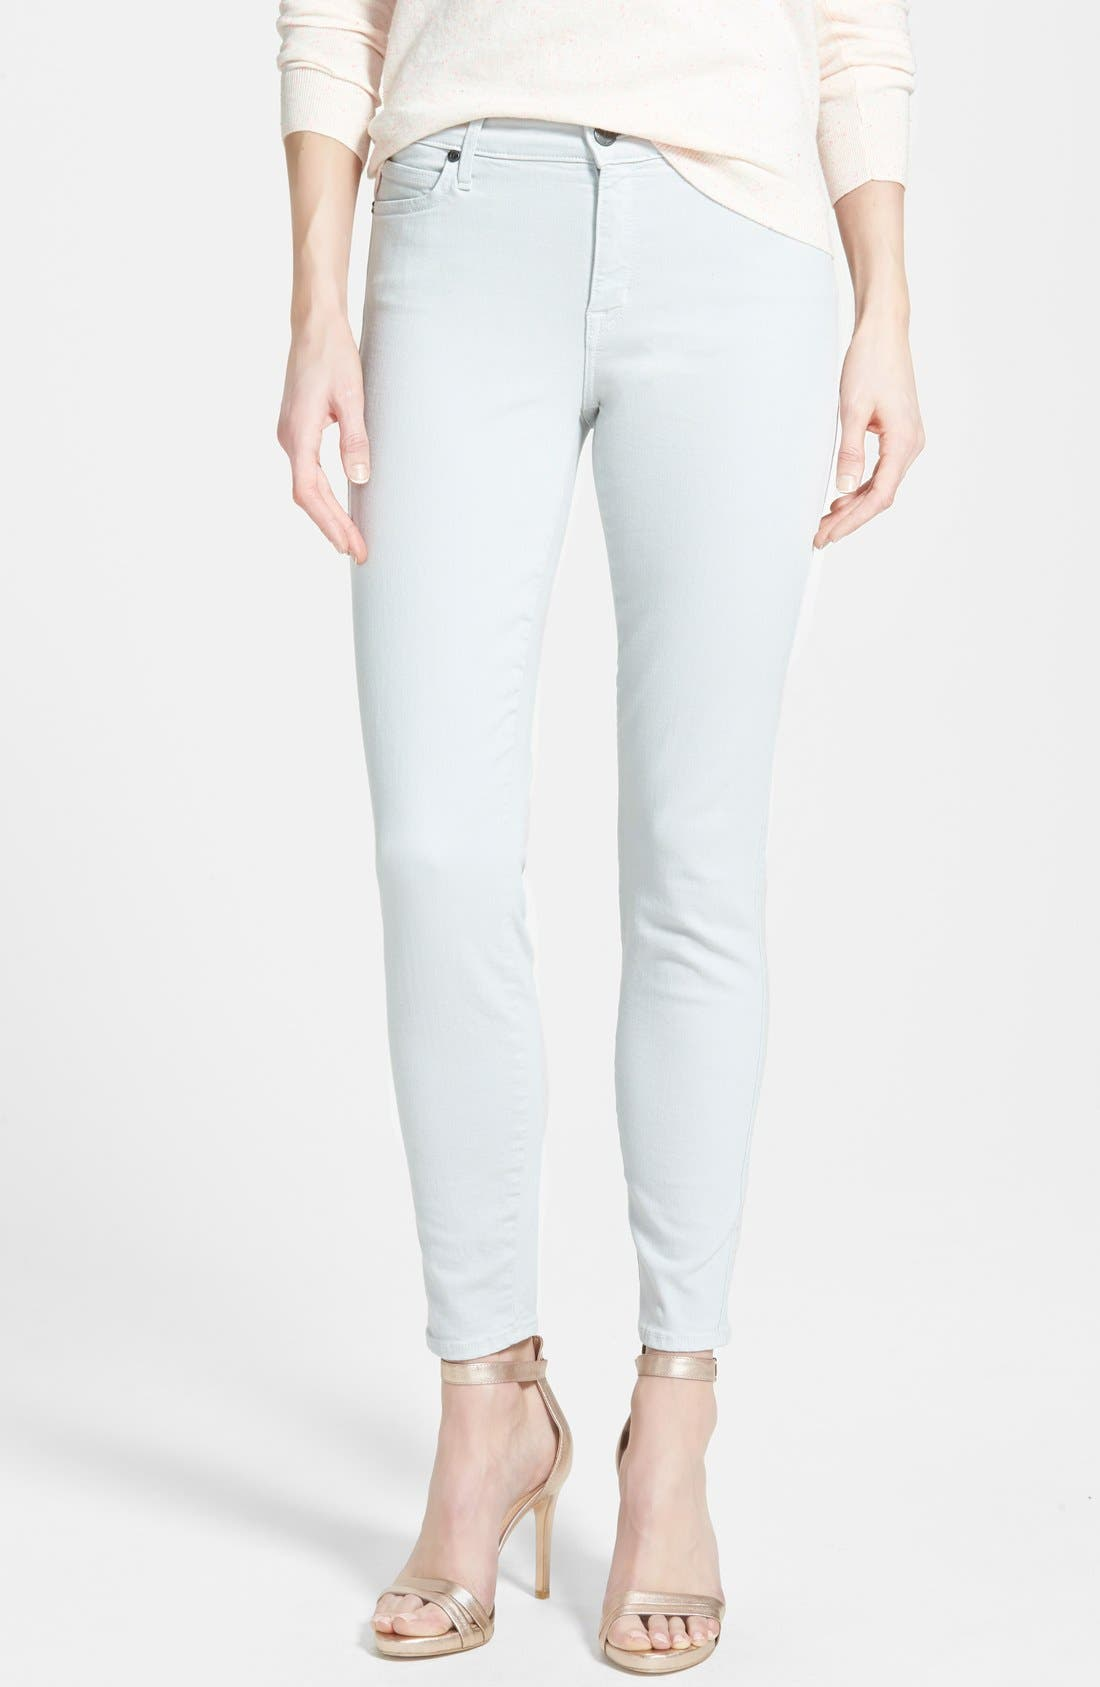 'Wisdom' Colored Stretch Ankle Skinny Jeans,                         Main,                         color, 098